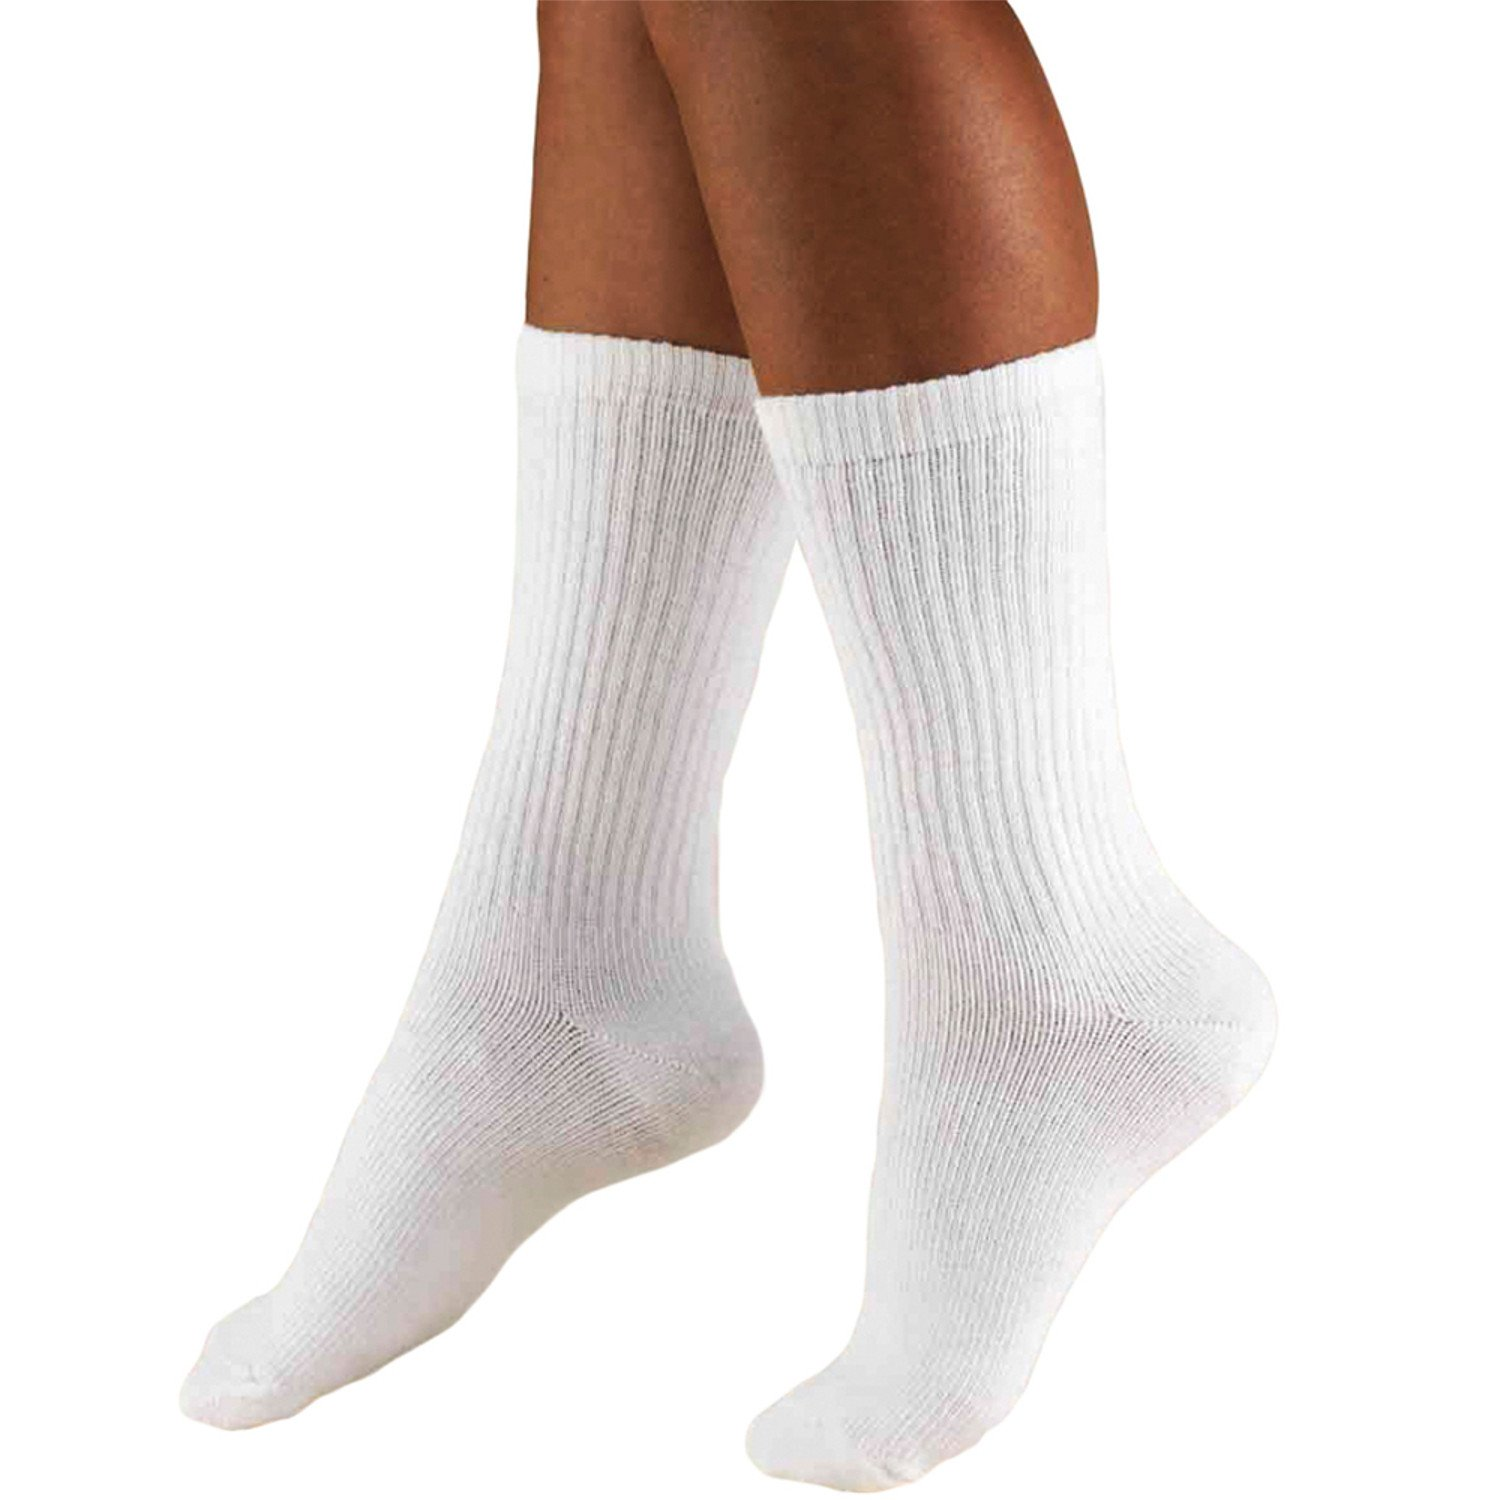 Amazon.com: Truform 15-20 Mens Athletic Crew Sock, XL, White (Pack of 2): Health & Personal Care